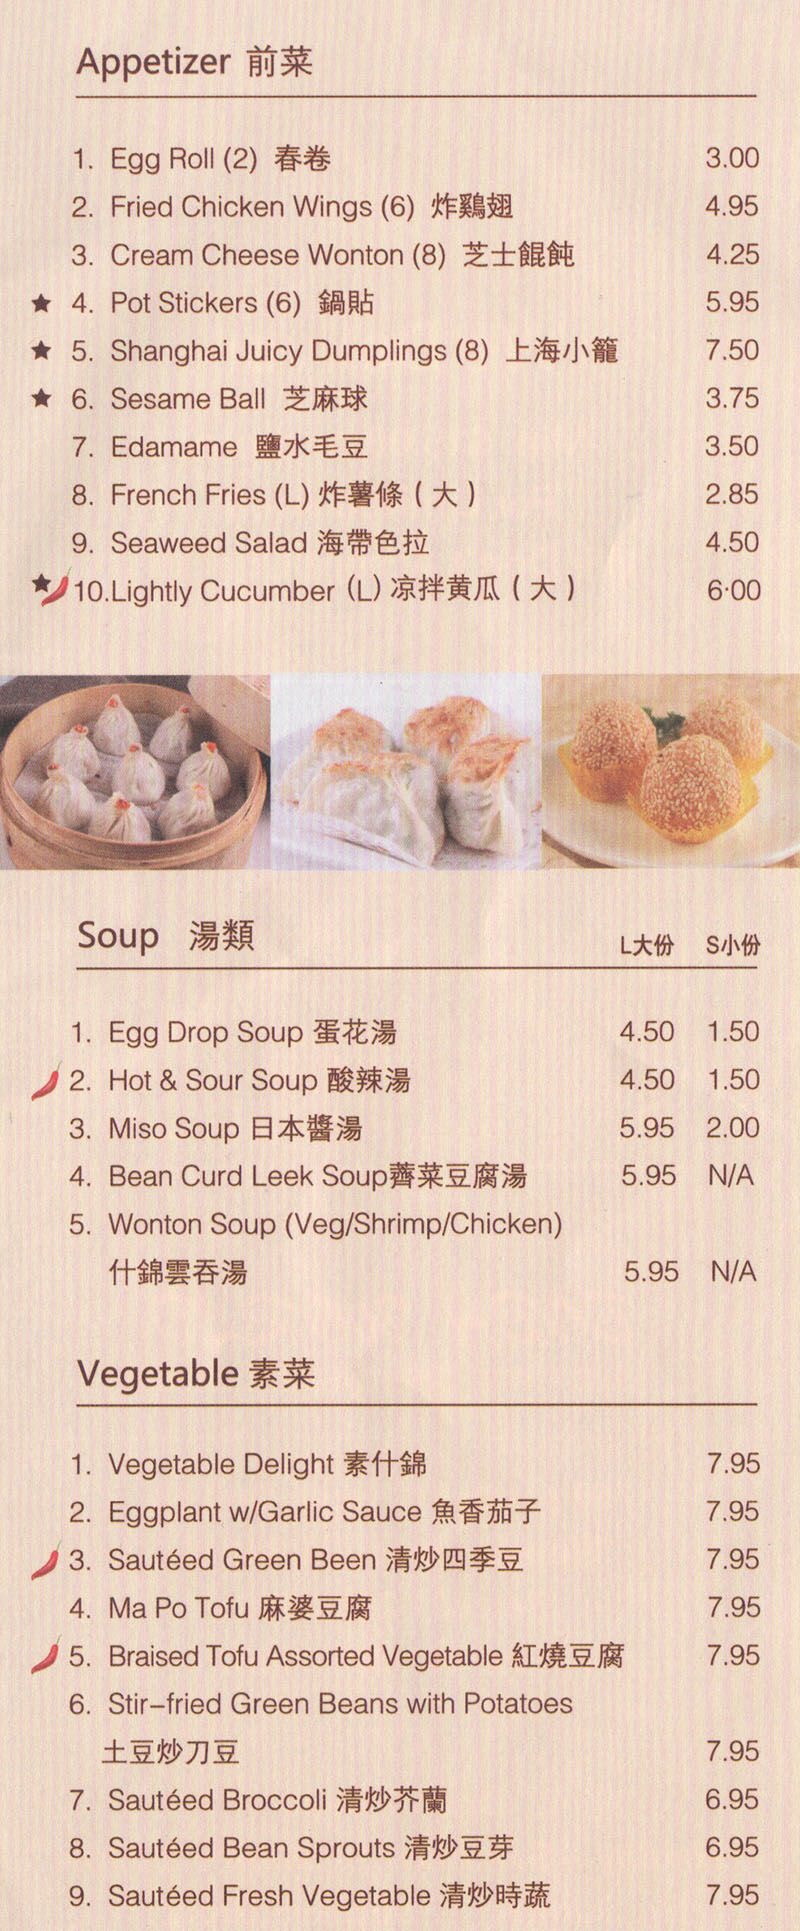 Boba World menu - appetizers, soup, vegetable dishes